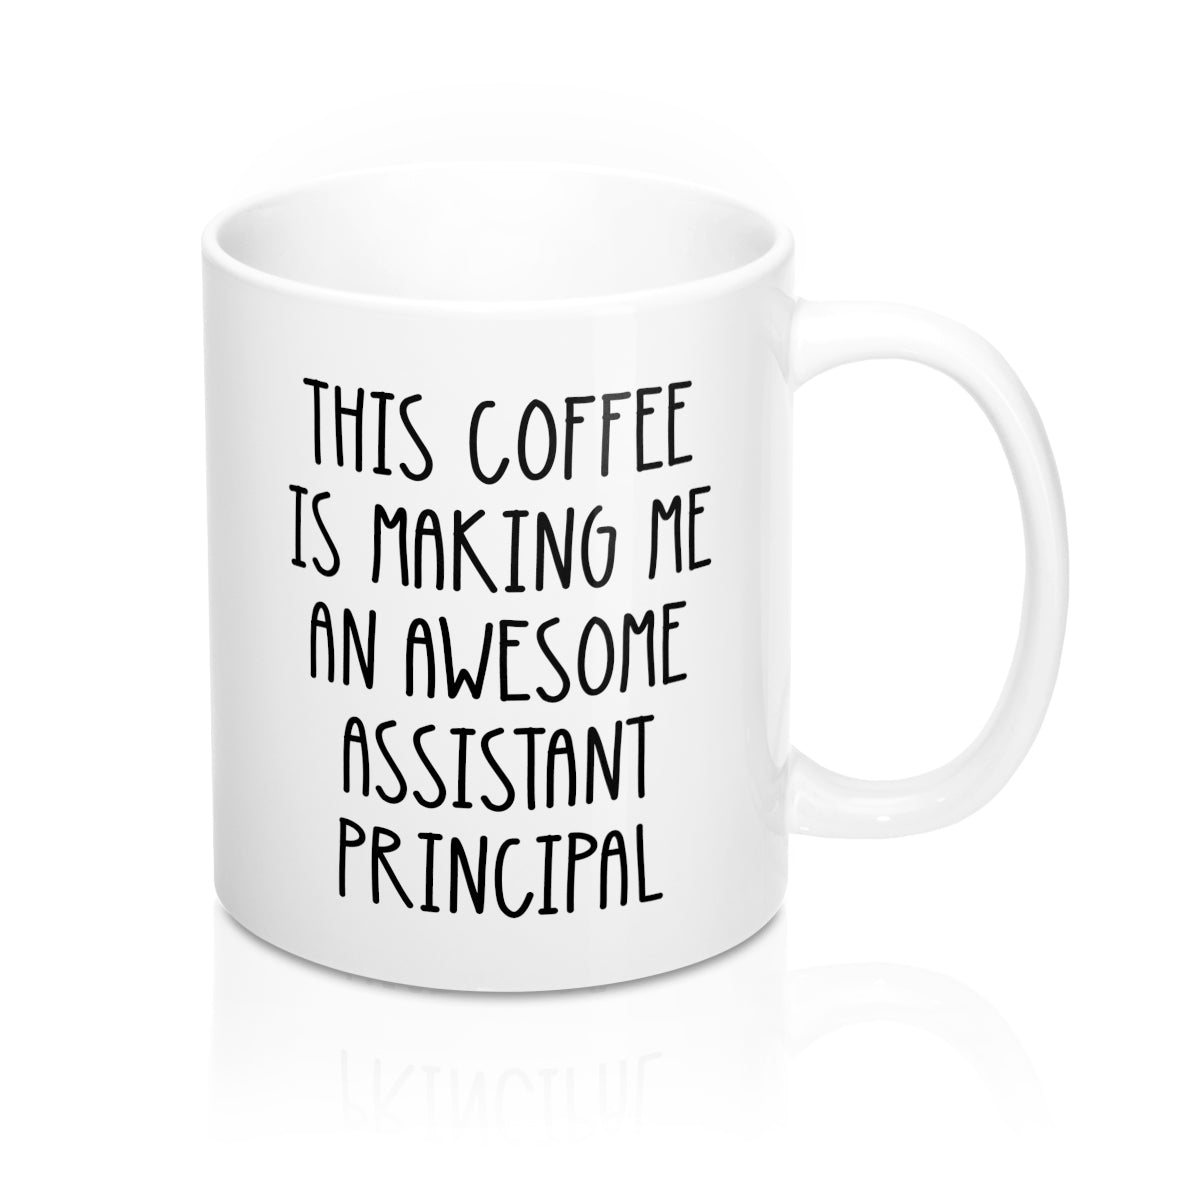 This Coffee Is Making Me An Awesome Assistant Principal Mug